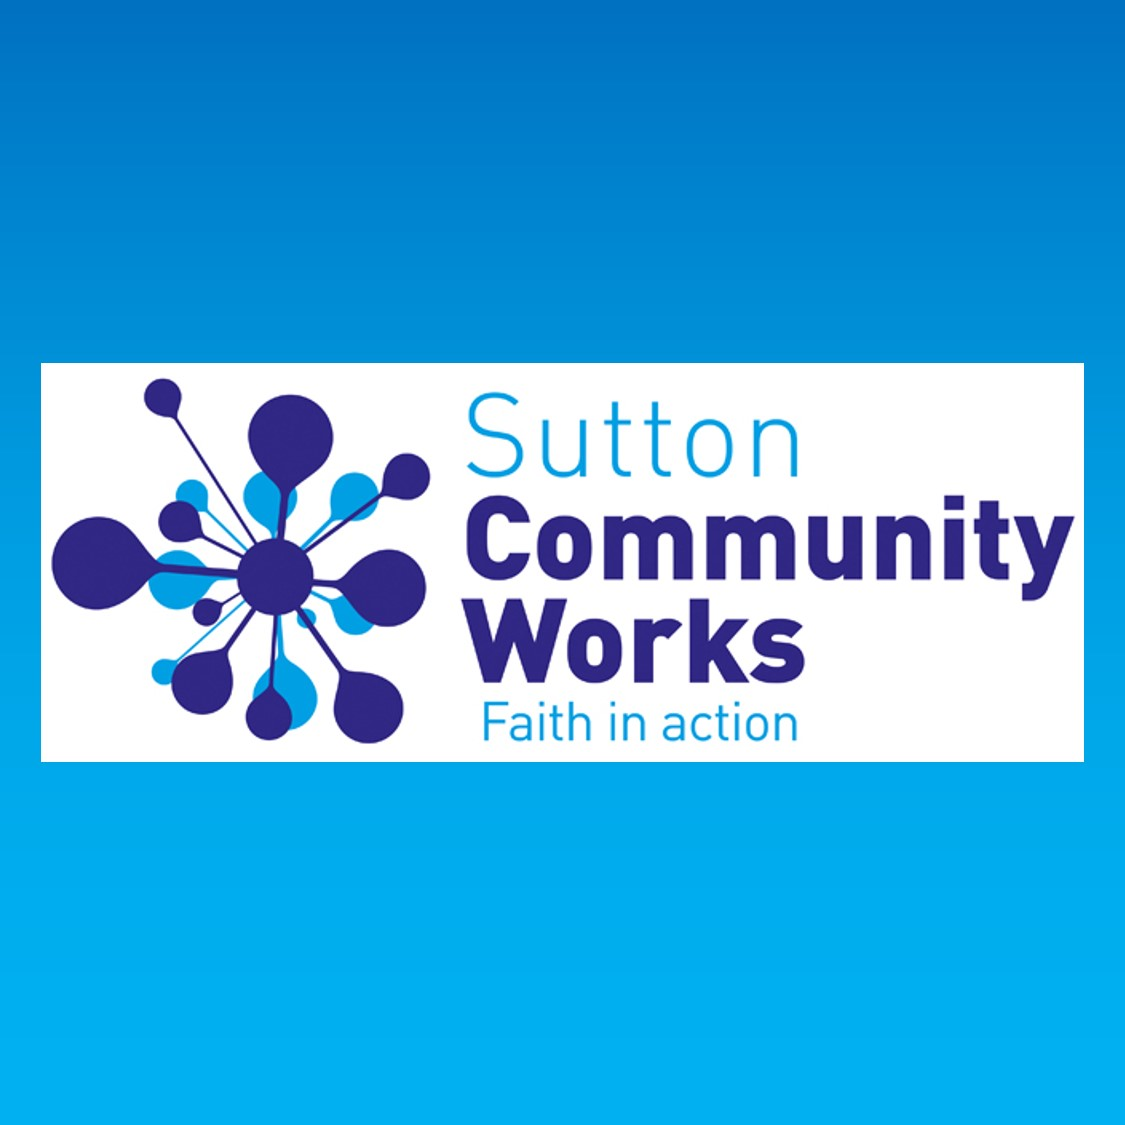 *Sutton Community Works*Sutton Community Works mission is to alleviate poverty, reduce fear of crime, tackle social isolation, joblessness and homelessness. We do this through projects such as Foodbank, Street & School Pastors, Job club, a befriending scheme for over 65's and a winter shelter. We are directly supported by 20 churches across the borough and our 150 volunteers are drawn from even more churches across the borough. A key aim is to engage with local partners including the police, the council and other agencies to identify and meet needs and encourage the local church to put faith into action. Find out more at suttoncommunityworks.org or contact Ian Ayres ianlayres@aol.com